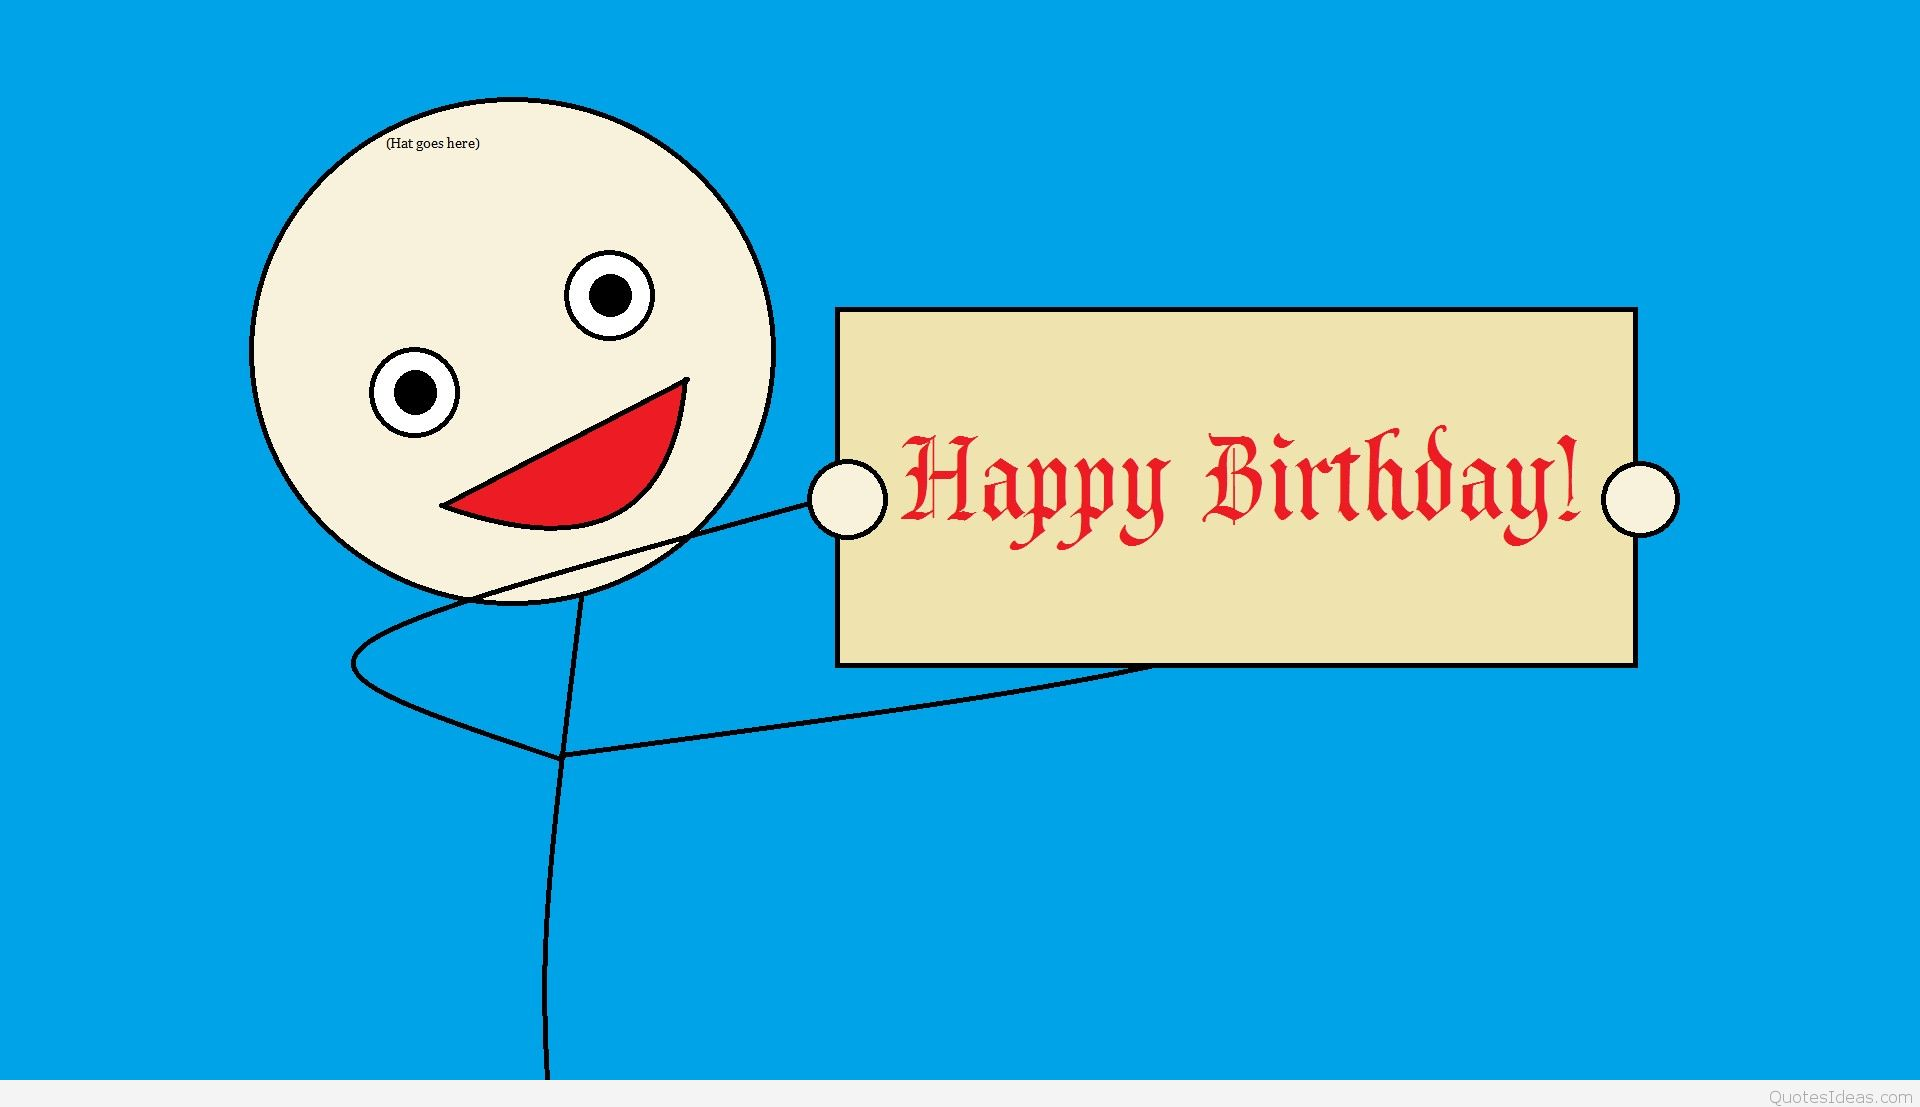 funny happy birthday drawings ; cool-happy-birthday-cards-funny-card-birthdays-greetings-simple-text-red-letters-blue-background-draw-boy-smile-horizontal-rectangle